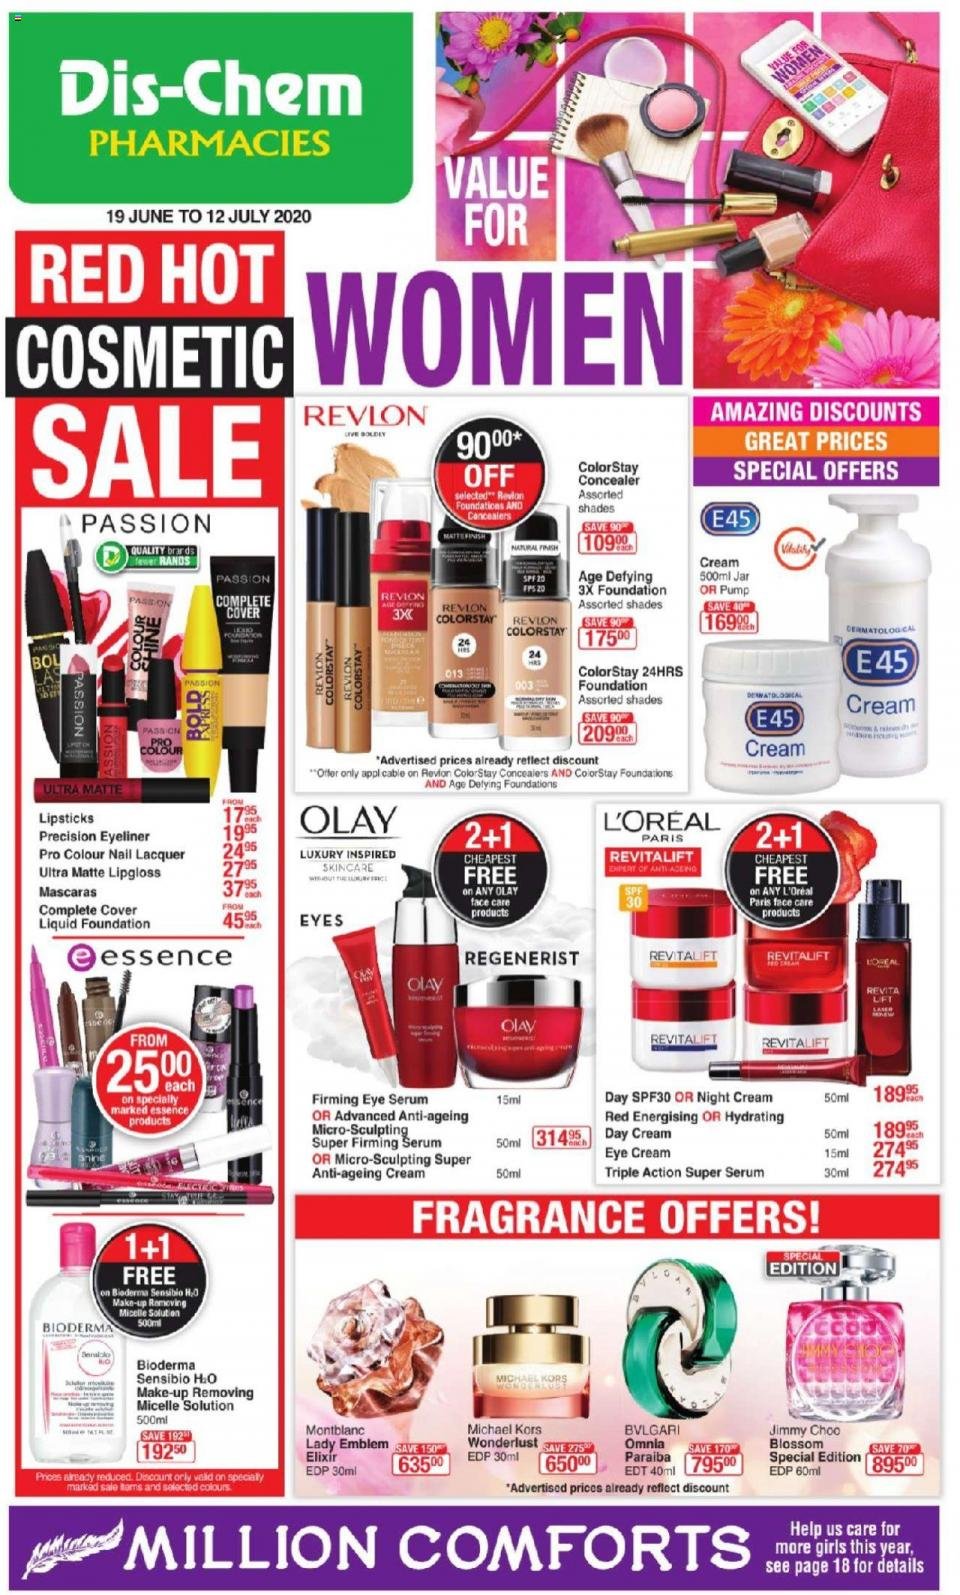 dischem specials value for women 19 june 2020